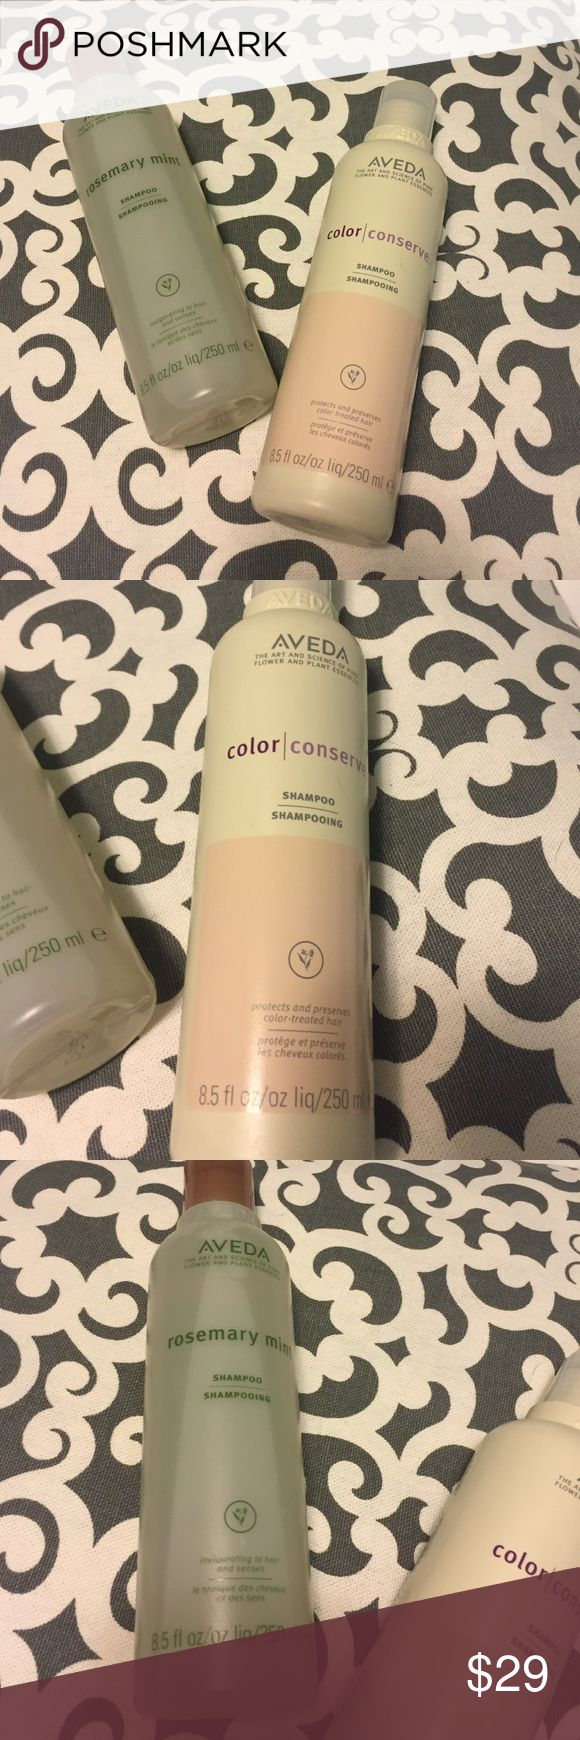 Color Conserve & Rosemary Mint Aveda Shampoos One Color Conserve 8.5 oz Shampoo and One Rosemary Mint 8.5 oz Shampoo. Both brand new! This is a great price compared to retail! Aveda Other